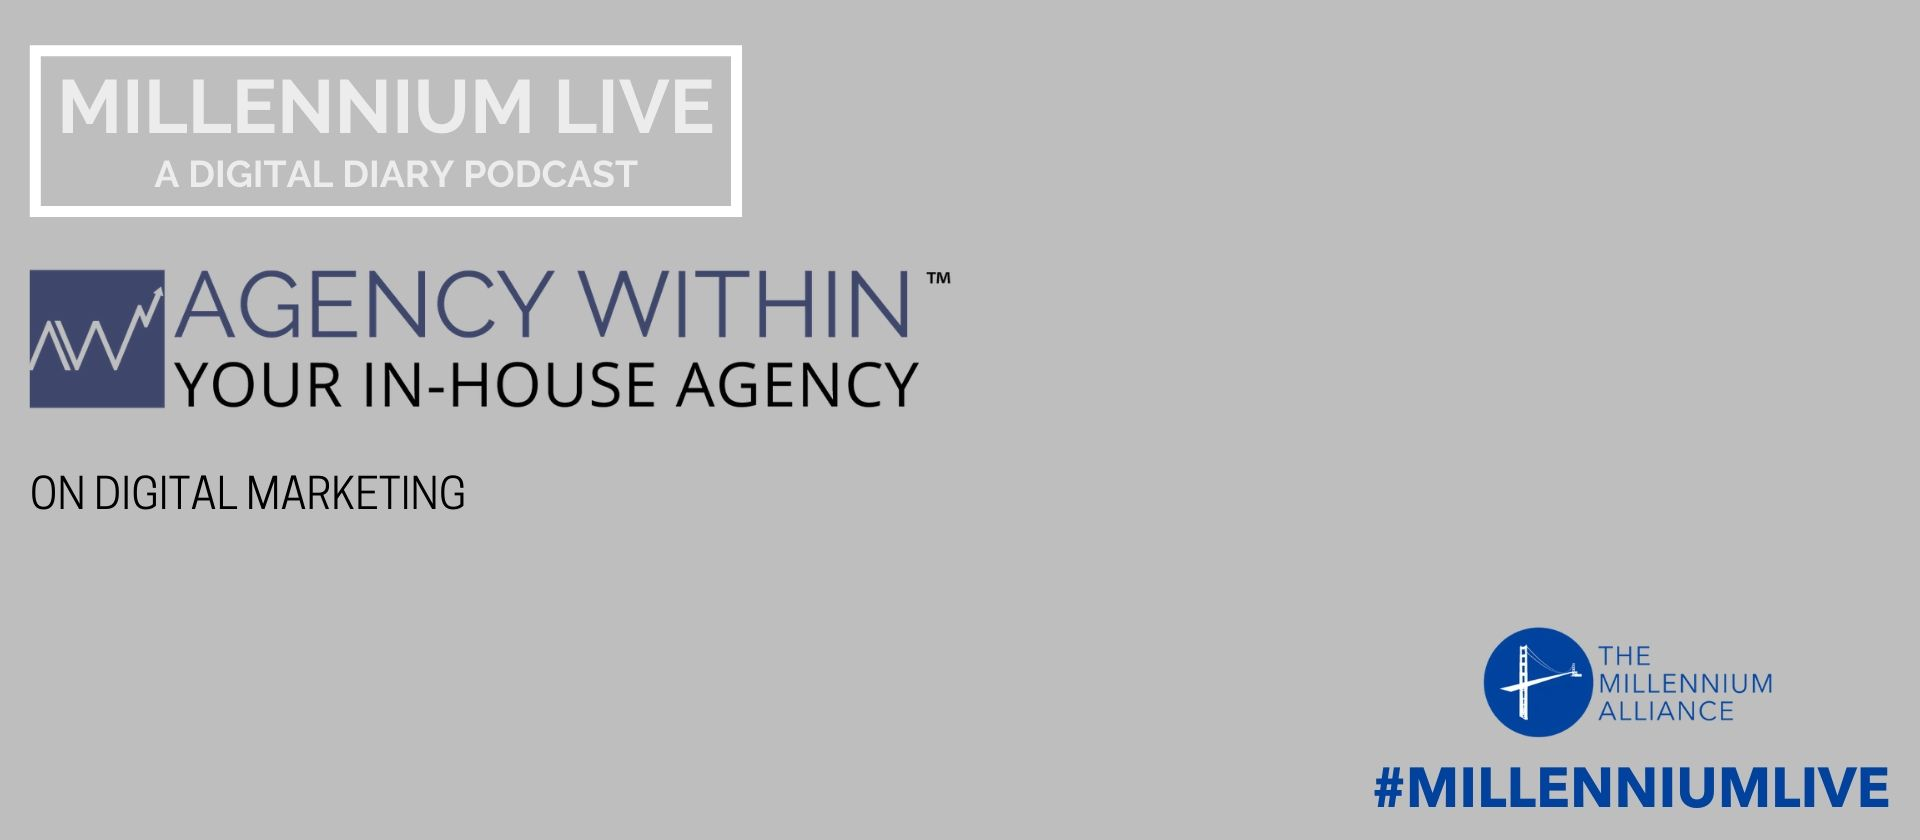 Agency Within Digital Marketing Podcast Millennium Alliance